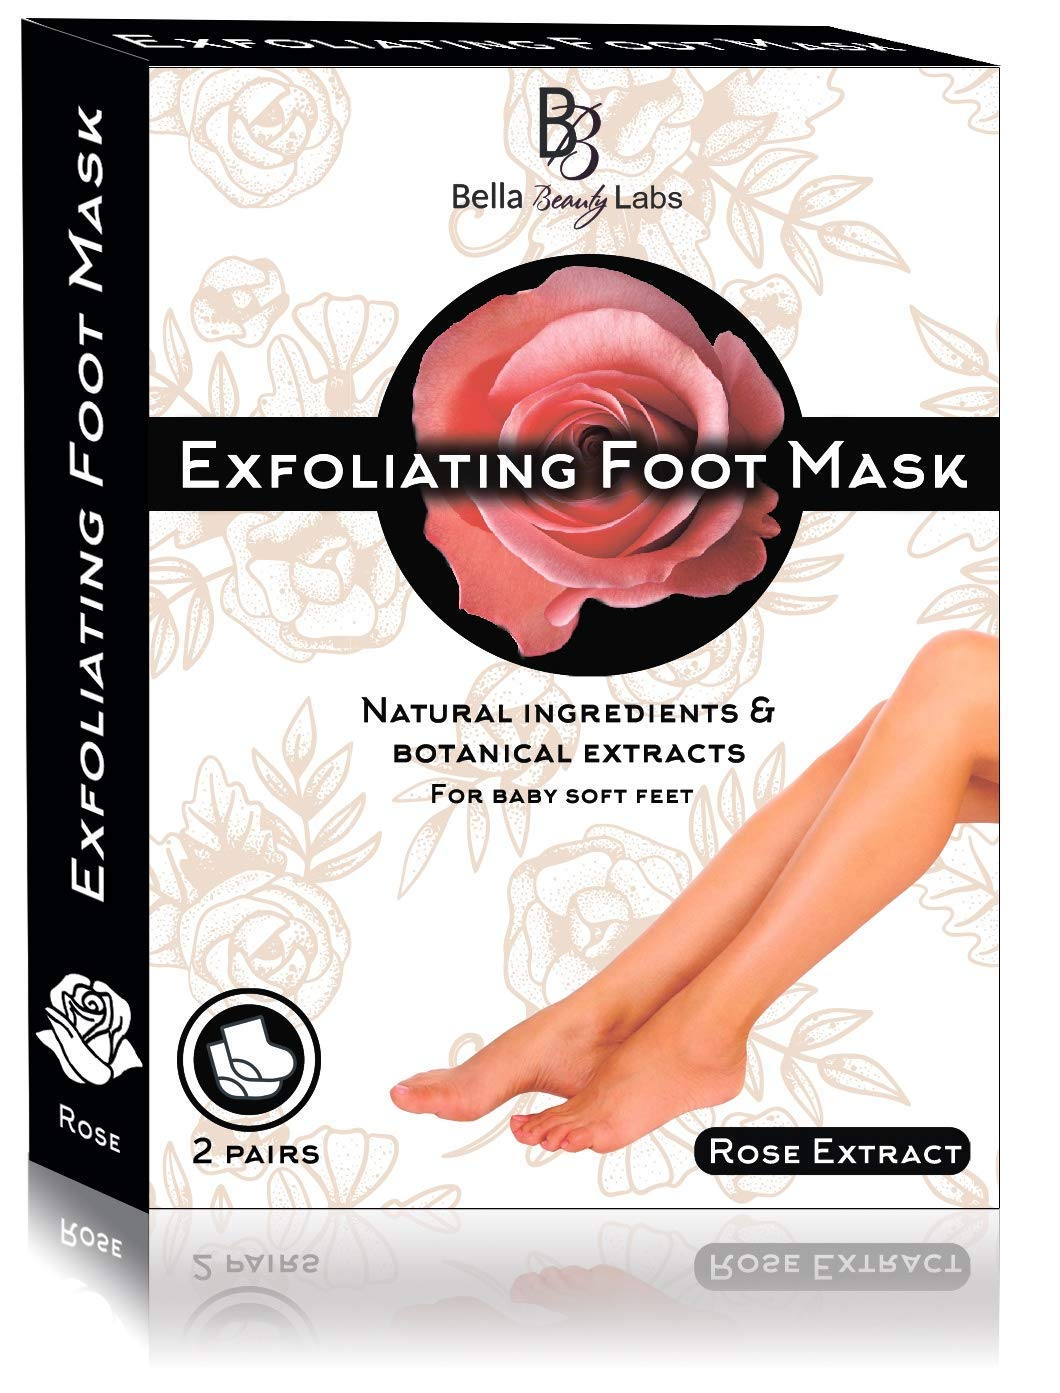 Foot Peel Mask 2 Pack for Smooth Soft Touch Feet - Peeling Away Calluses - Dead Skin Remover - Exfoliating Off Foot Mask for Baby Soft Silk Feet - Gel Socks Booties - Aloe Extract - Natural Rose Scent Bella Beauty Labs 4336305621